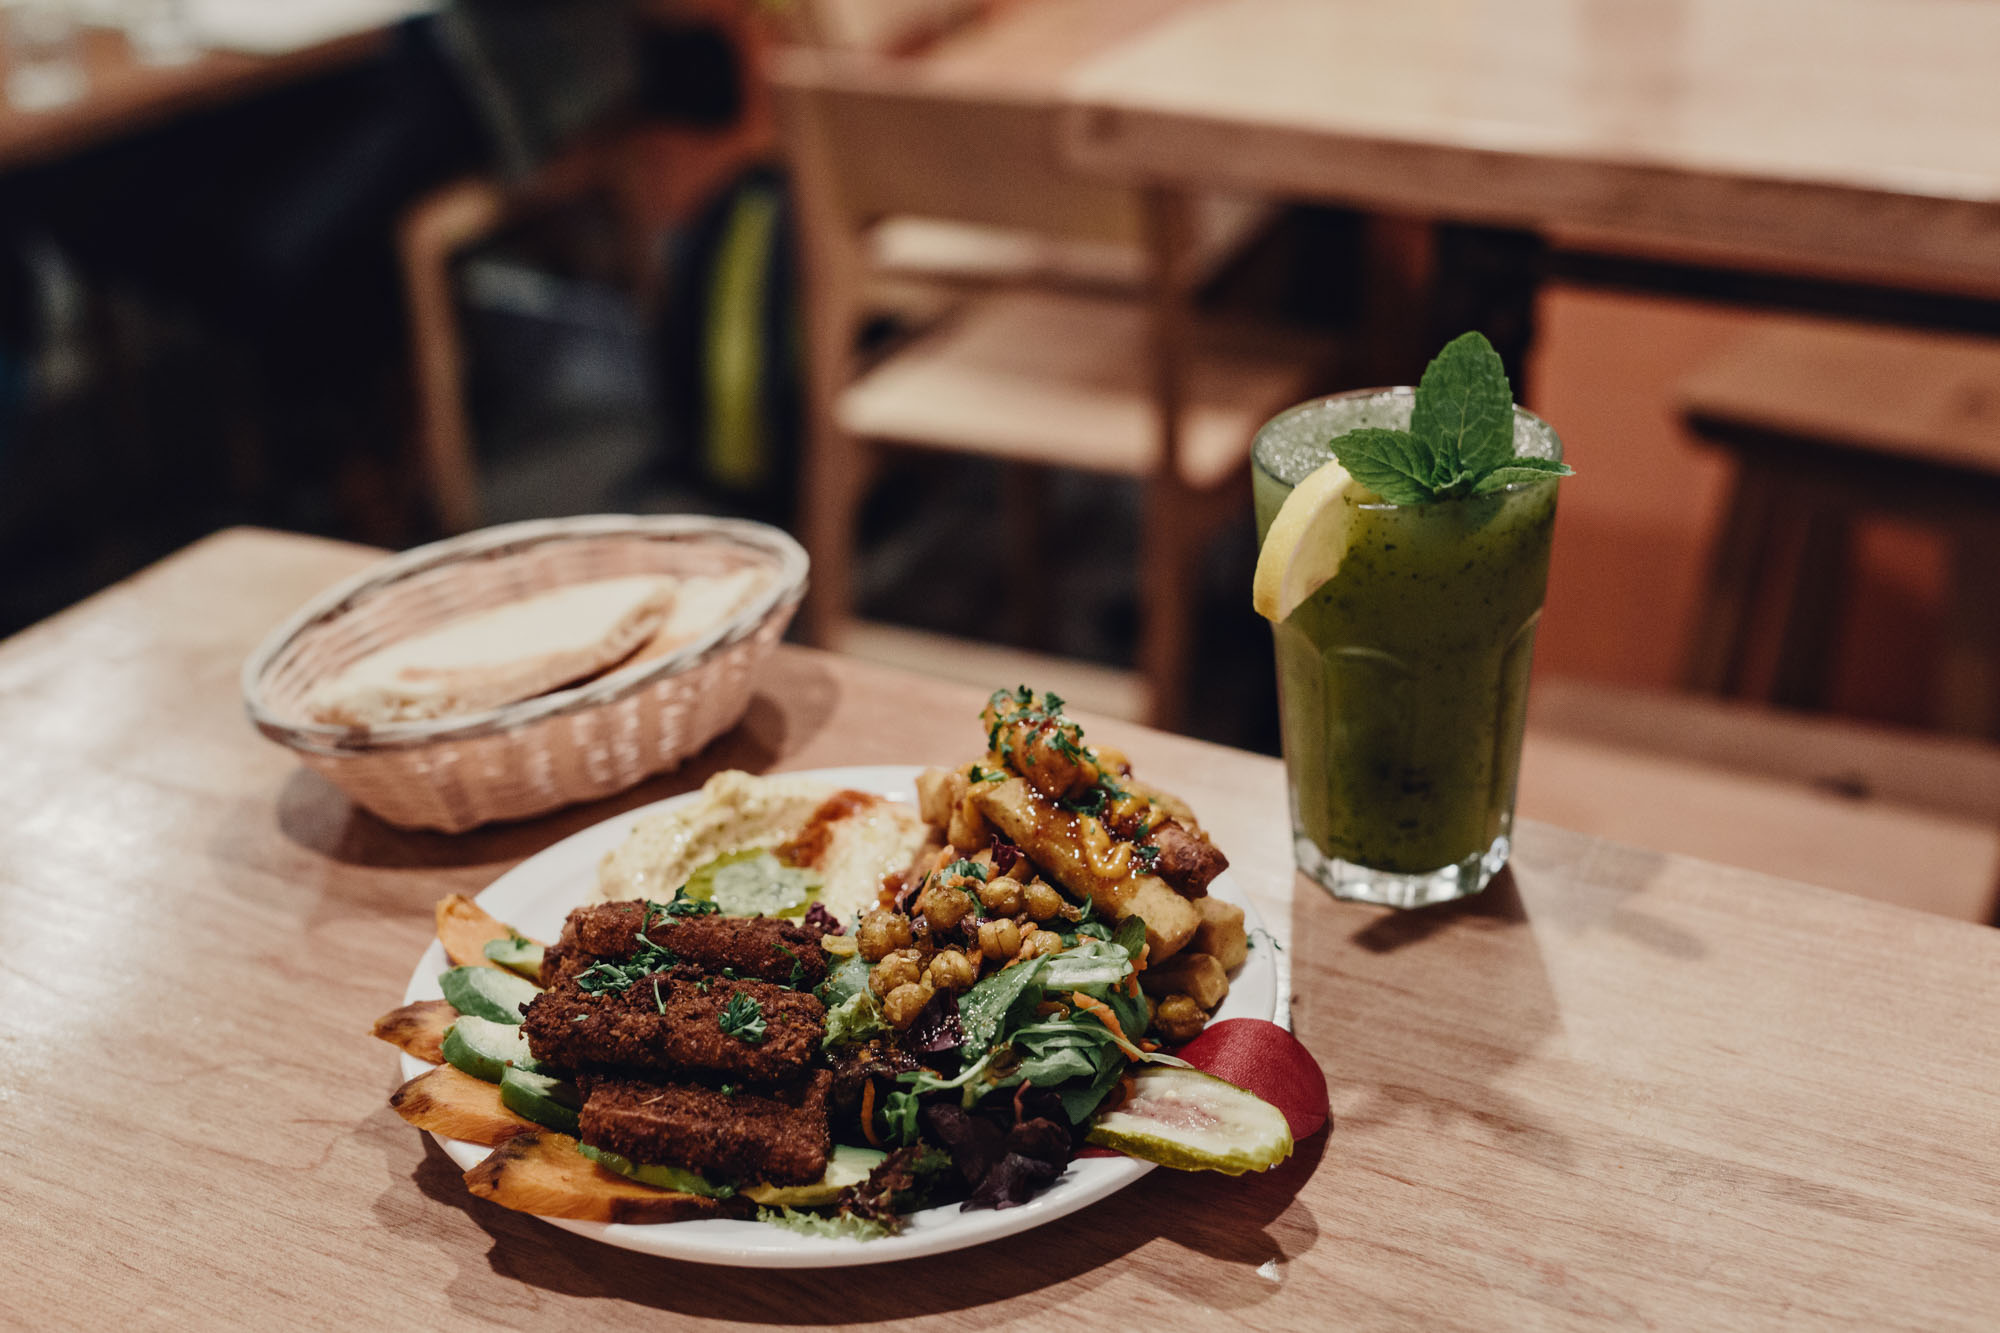 Lunch at Chickpea in Vancouver, British Columbia as part of the Dirt Road Travels city guide.